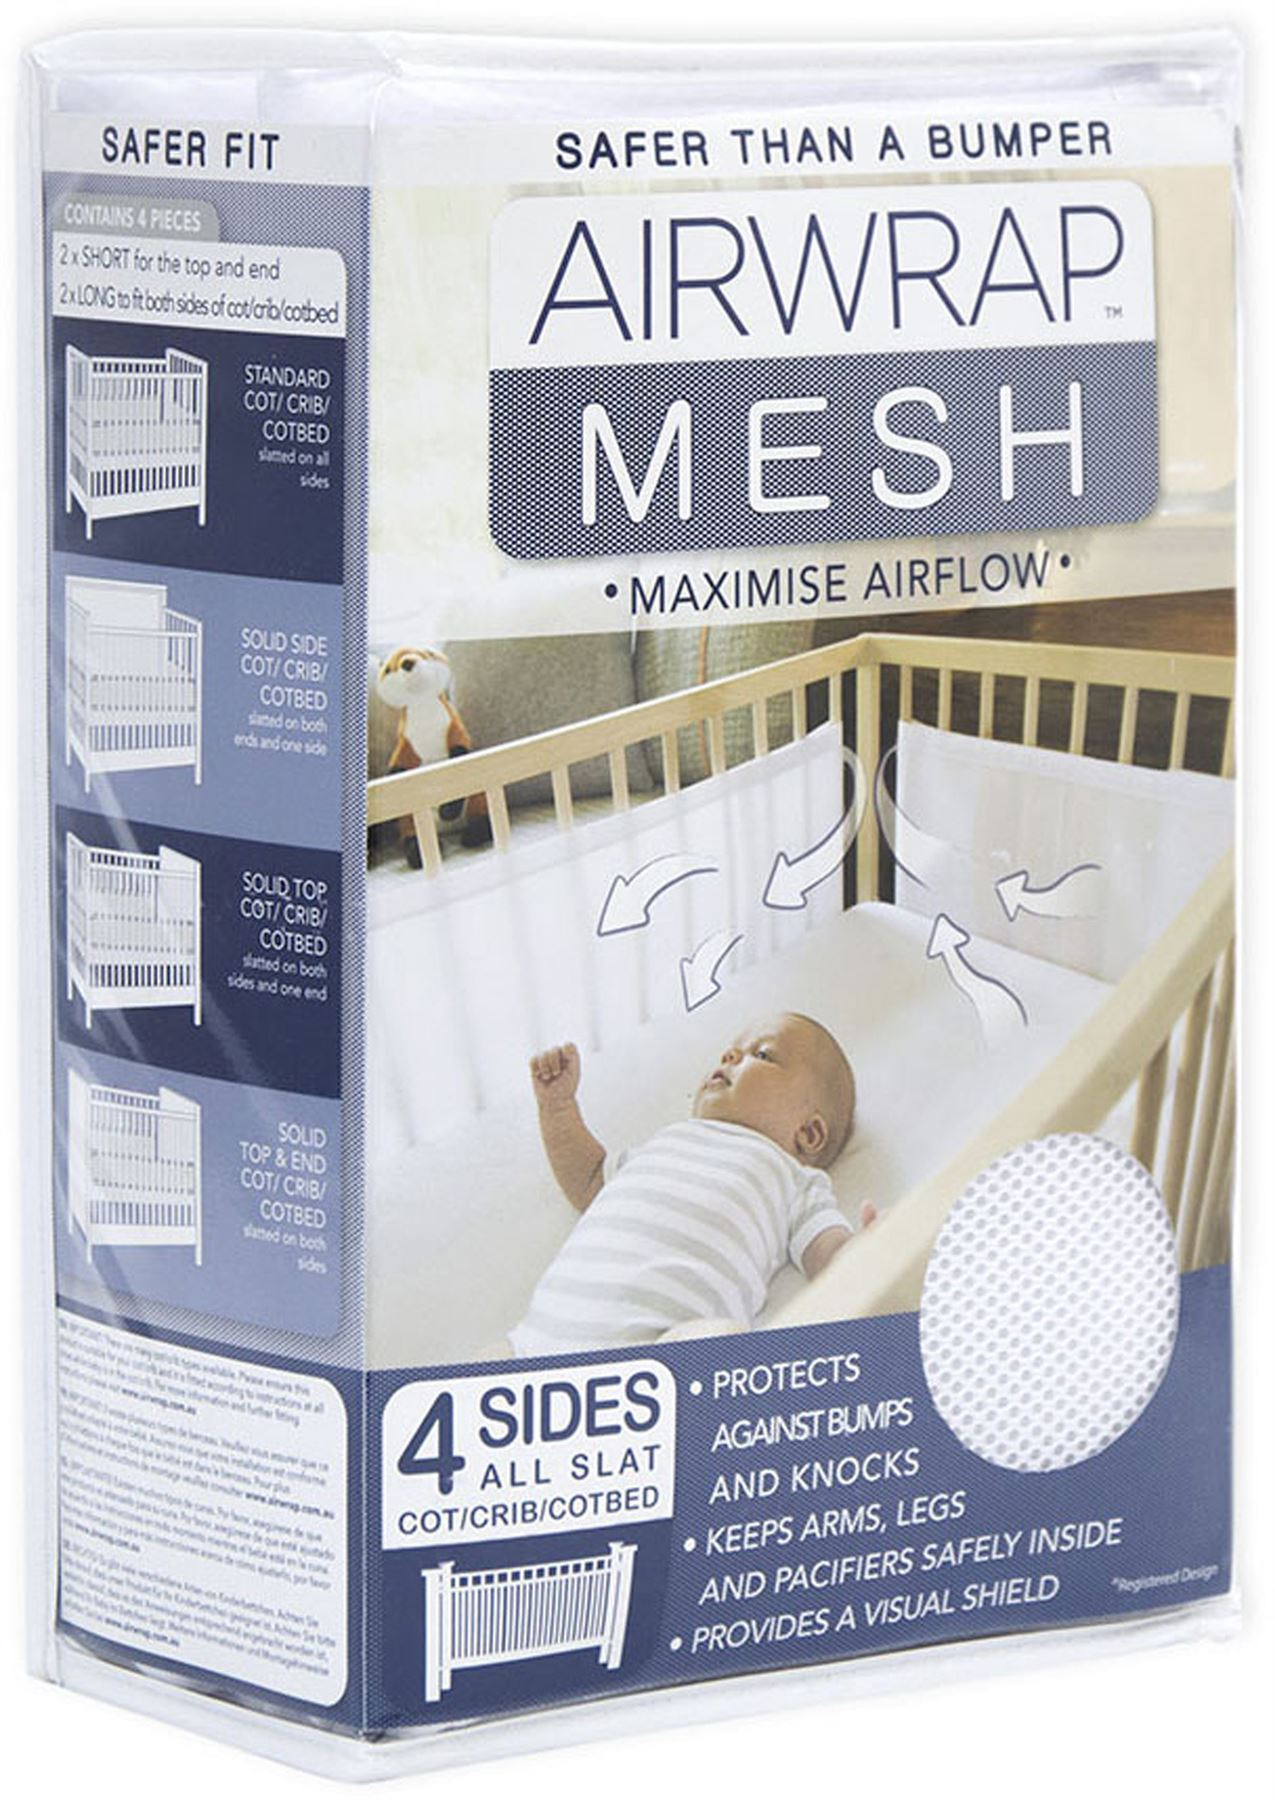 Airwrap Cot Bumper Details About Airwrap Mesh 4 Sided Cot Protector White Baby Cotbed Protection Safety